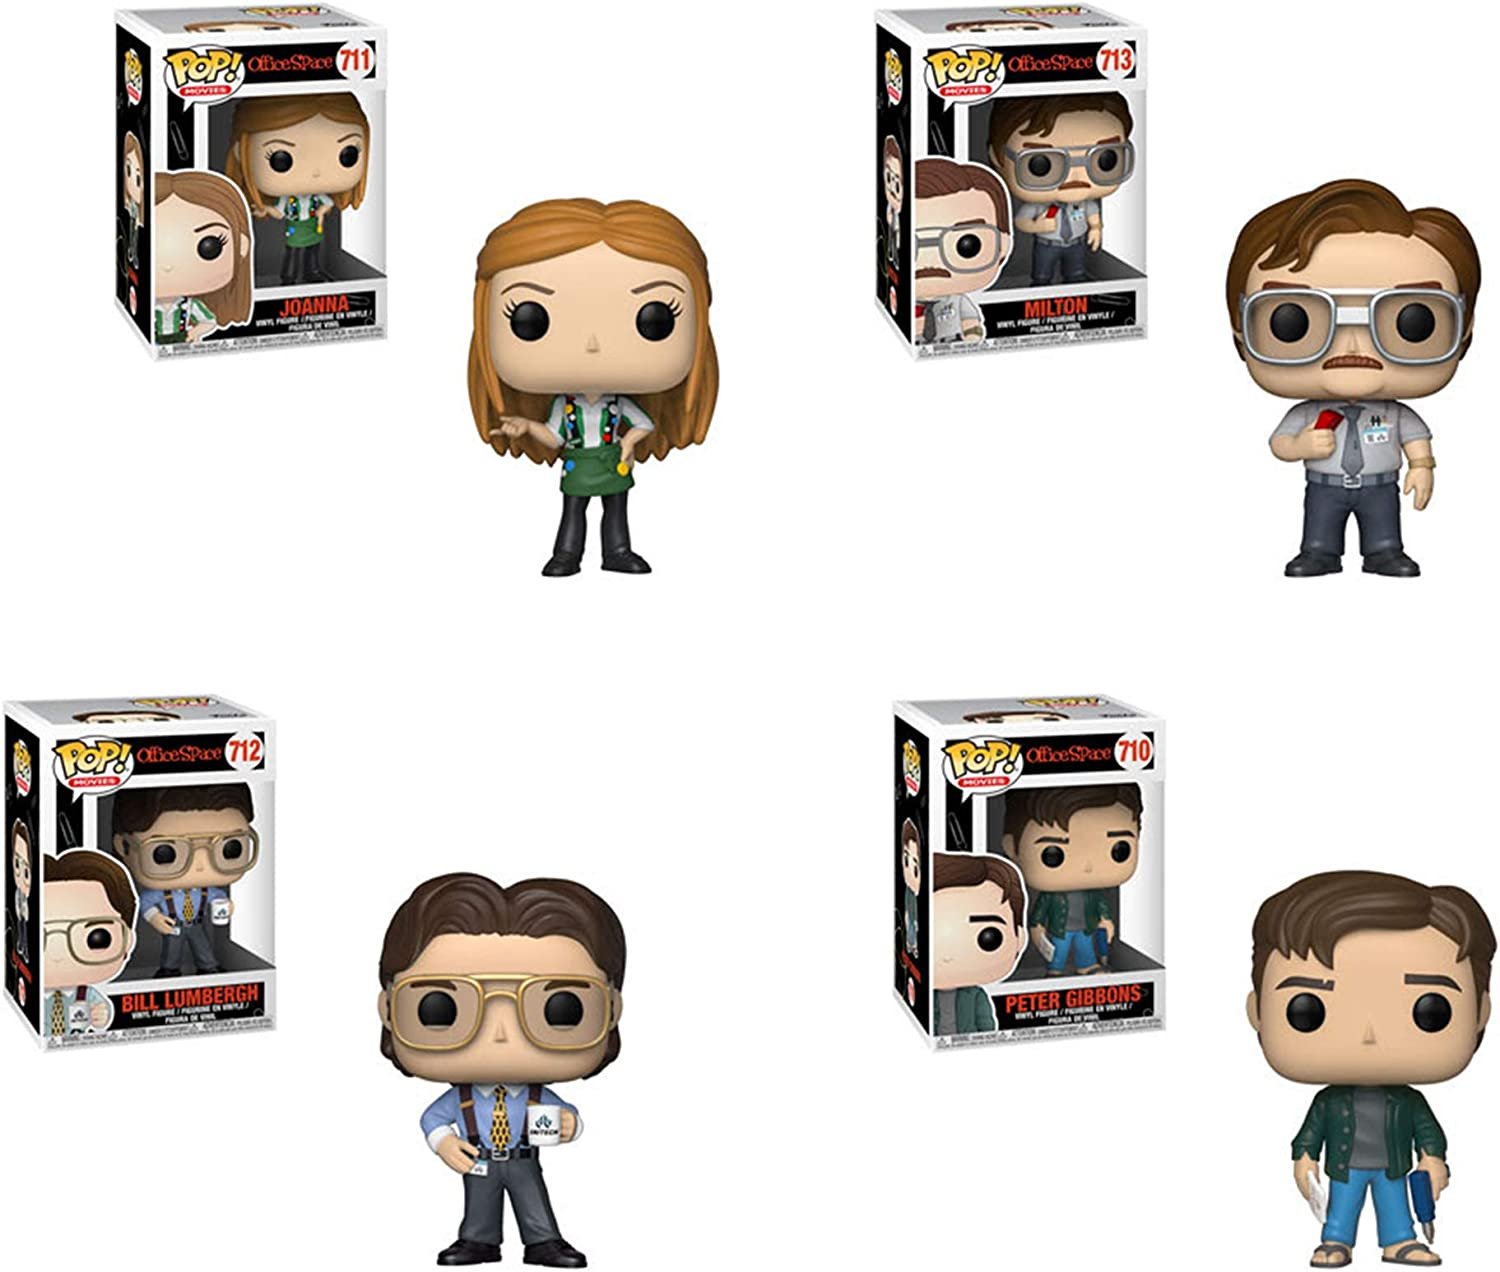 Funko Pop!: Bundle of 4: Office Space - Milton Waddams, Joanna with Flair, Peter Gibbons and Bill Lumbergh